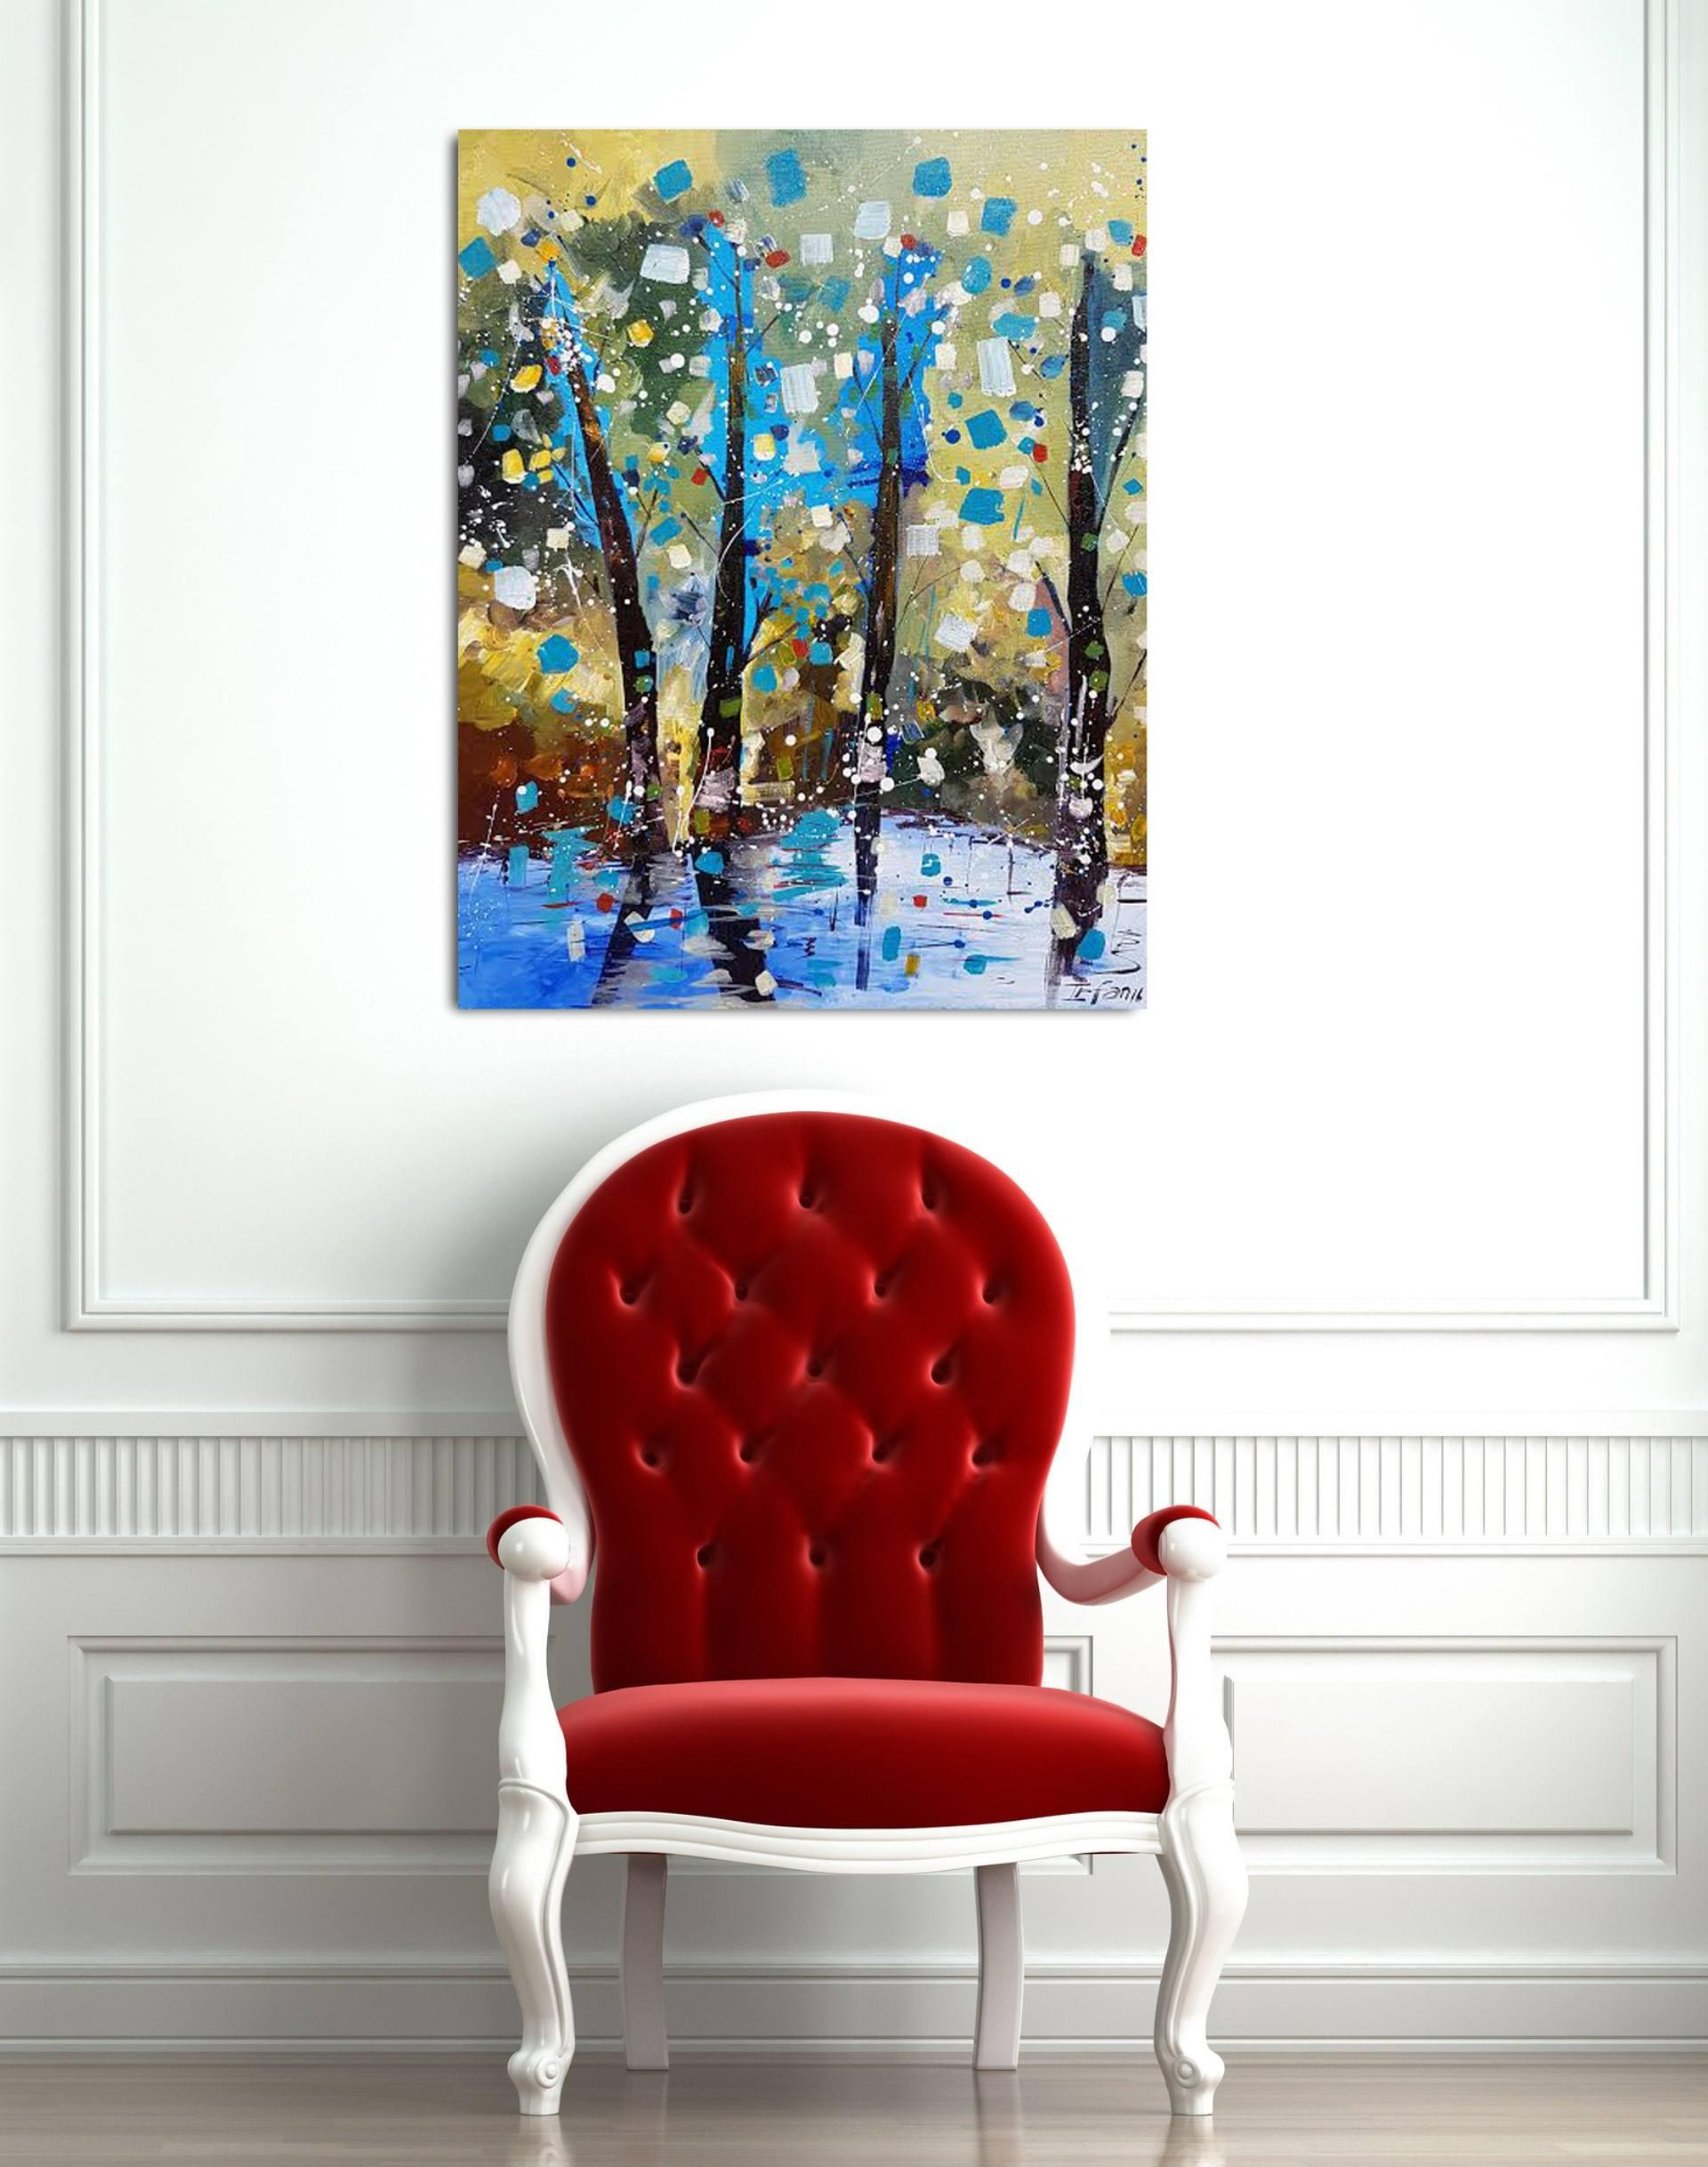 Saatchi Art: Colors Of Autumn/ Spring Impression Landscape Regarding Autumn  Inspired Wall Art (Image 17 of 20)